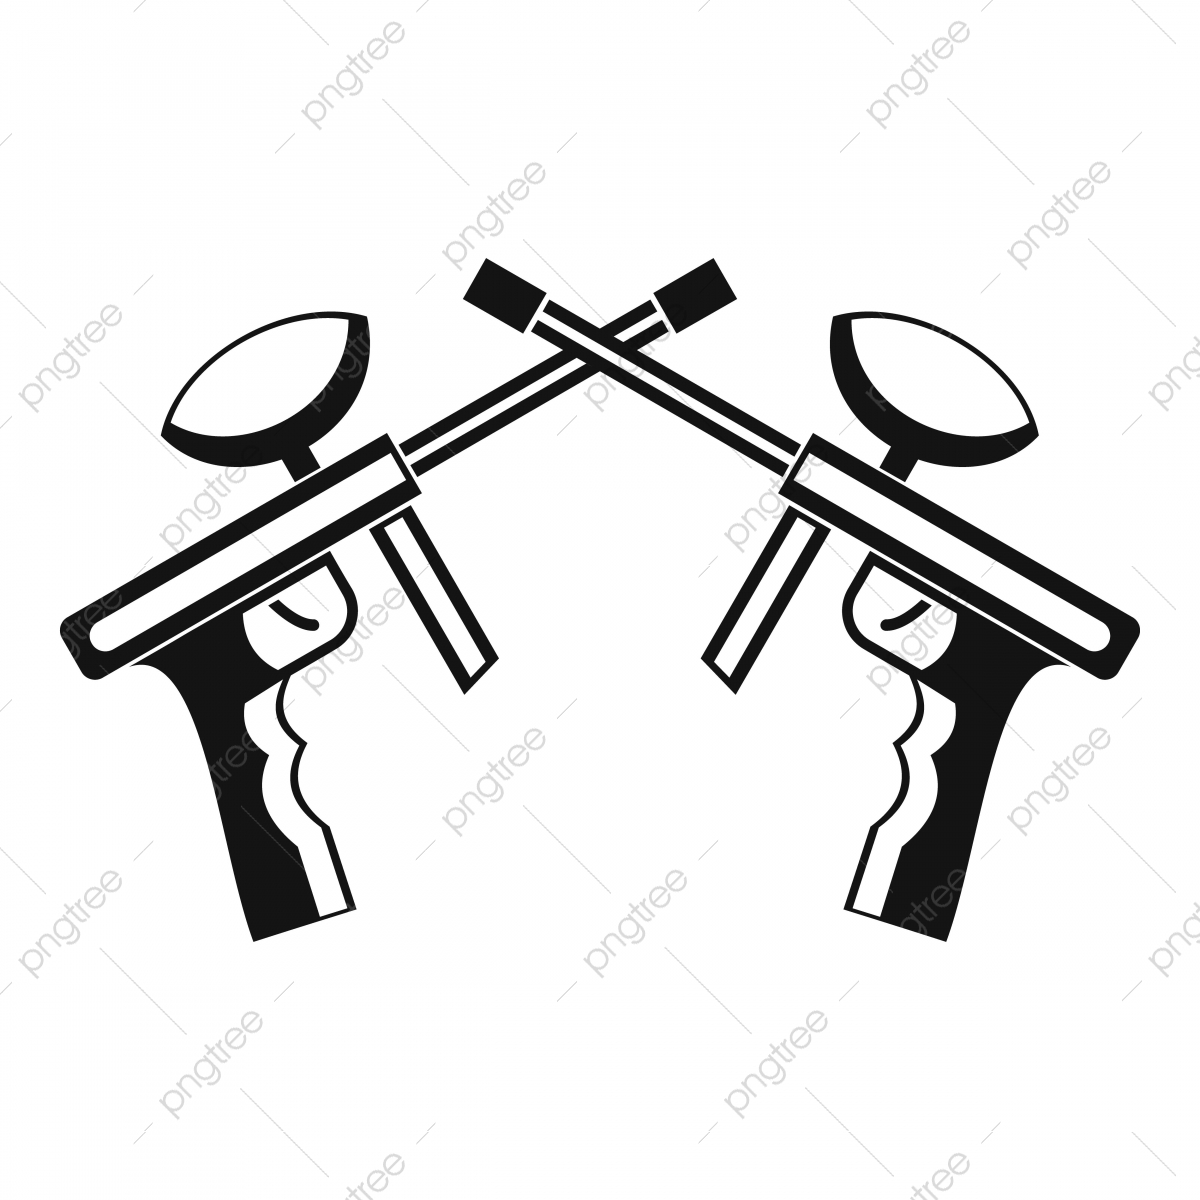 Paintball Guns Icon Simple Style Style Icons Simple Icons Gun Png And Vector With Transparent Background For Free Download